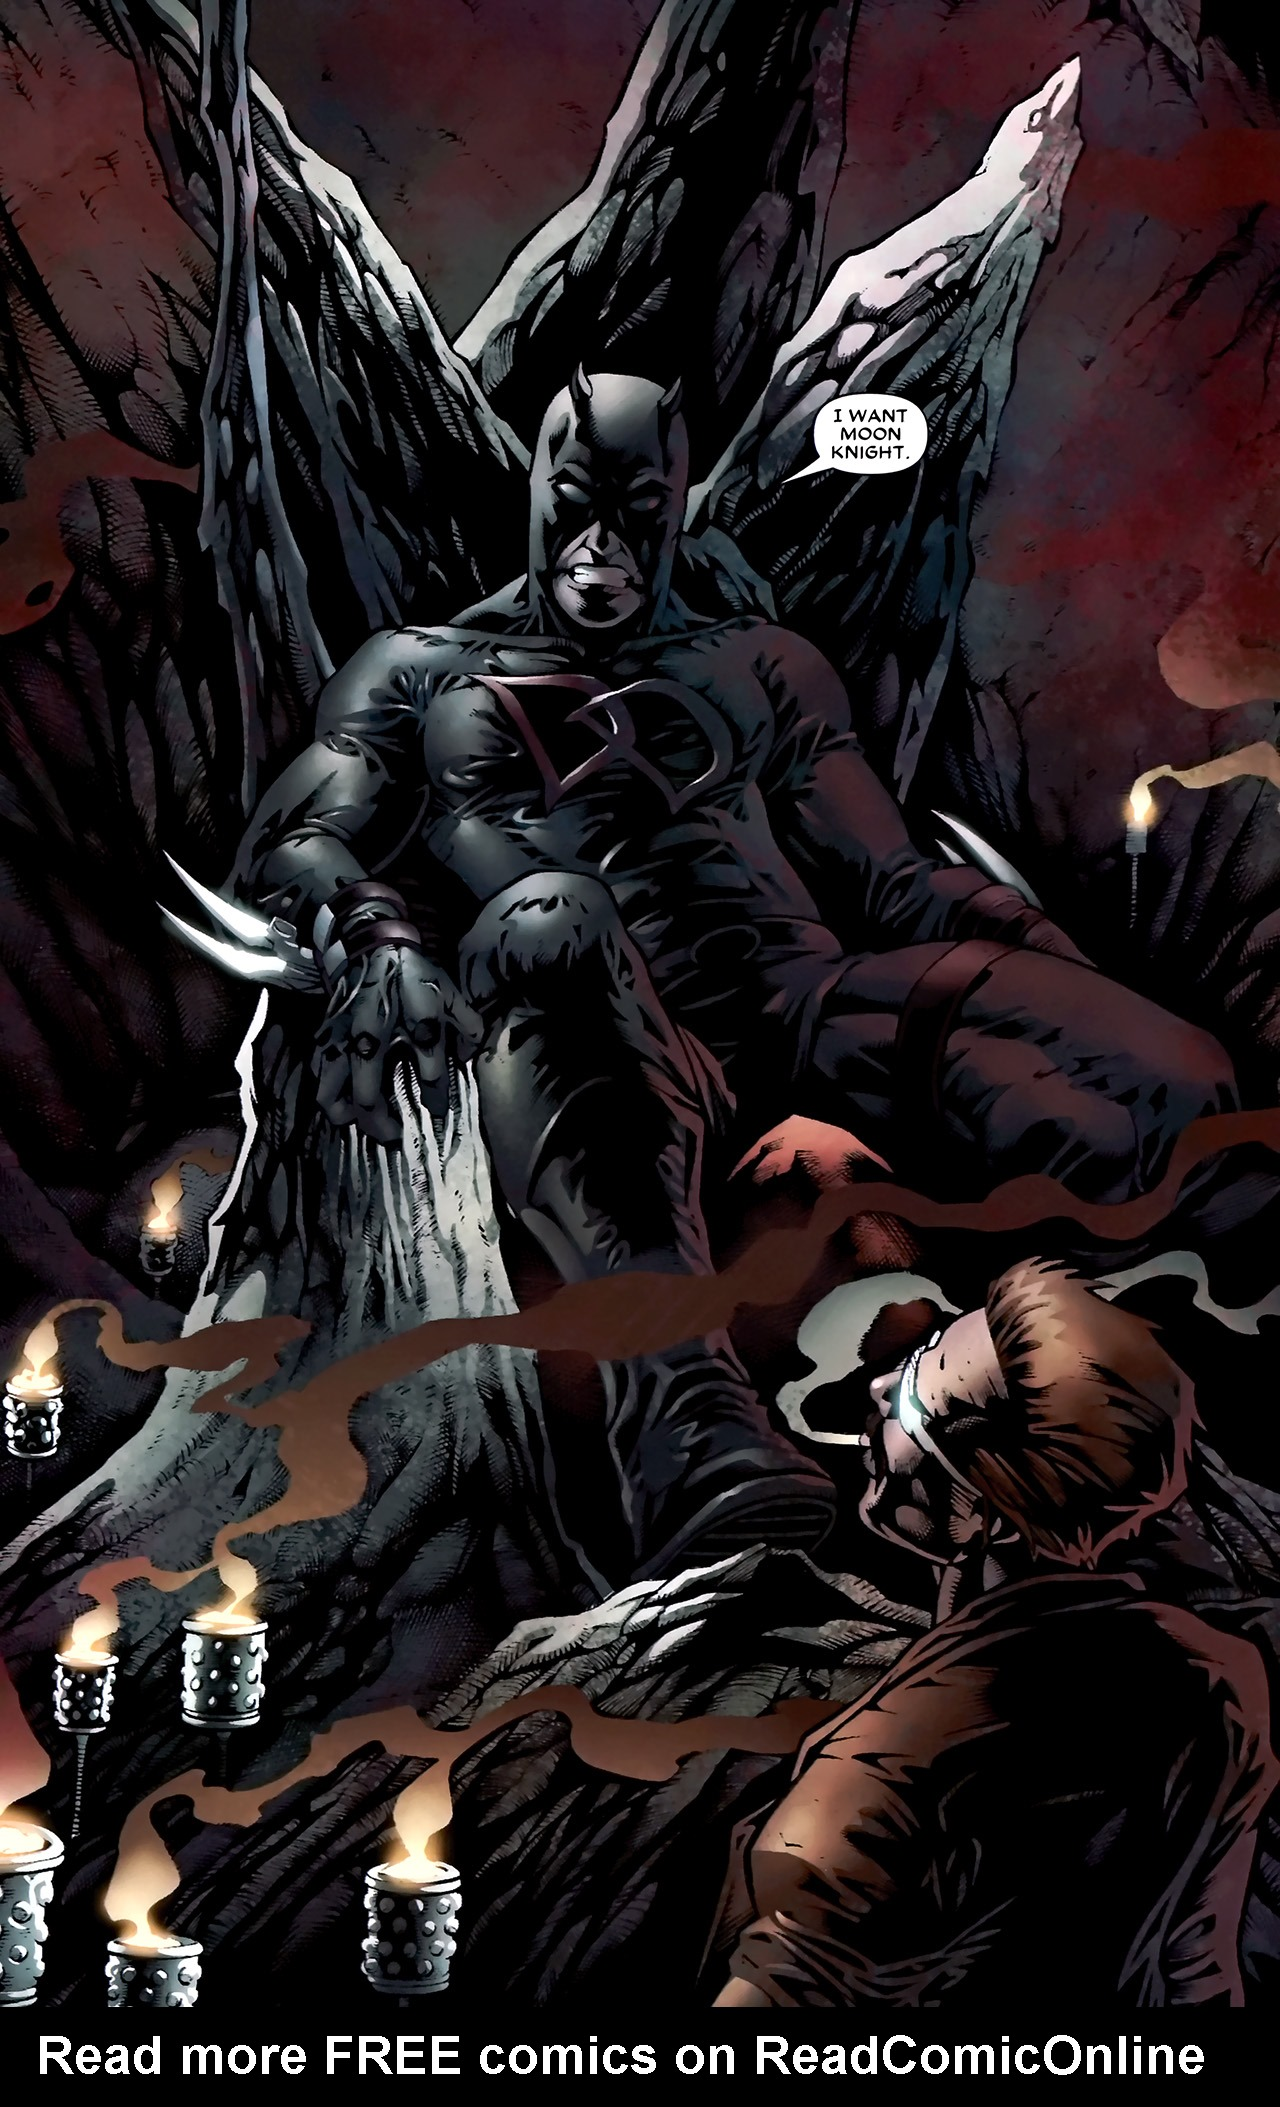 Read online Shadowland: Moon Knight comic -  Issue #1 - 10